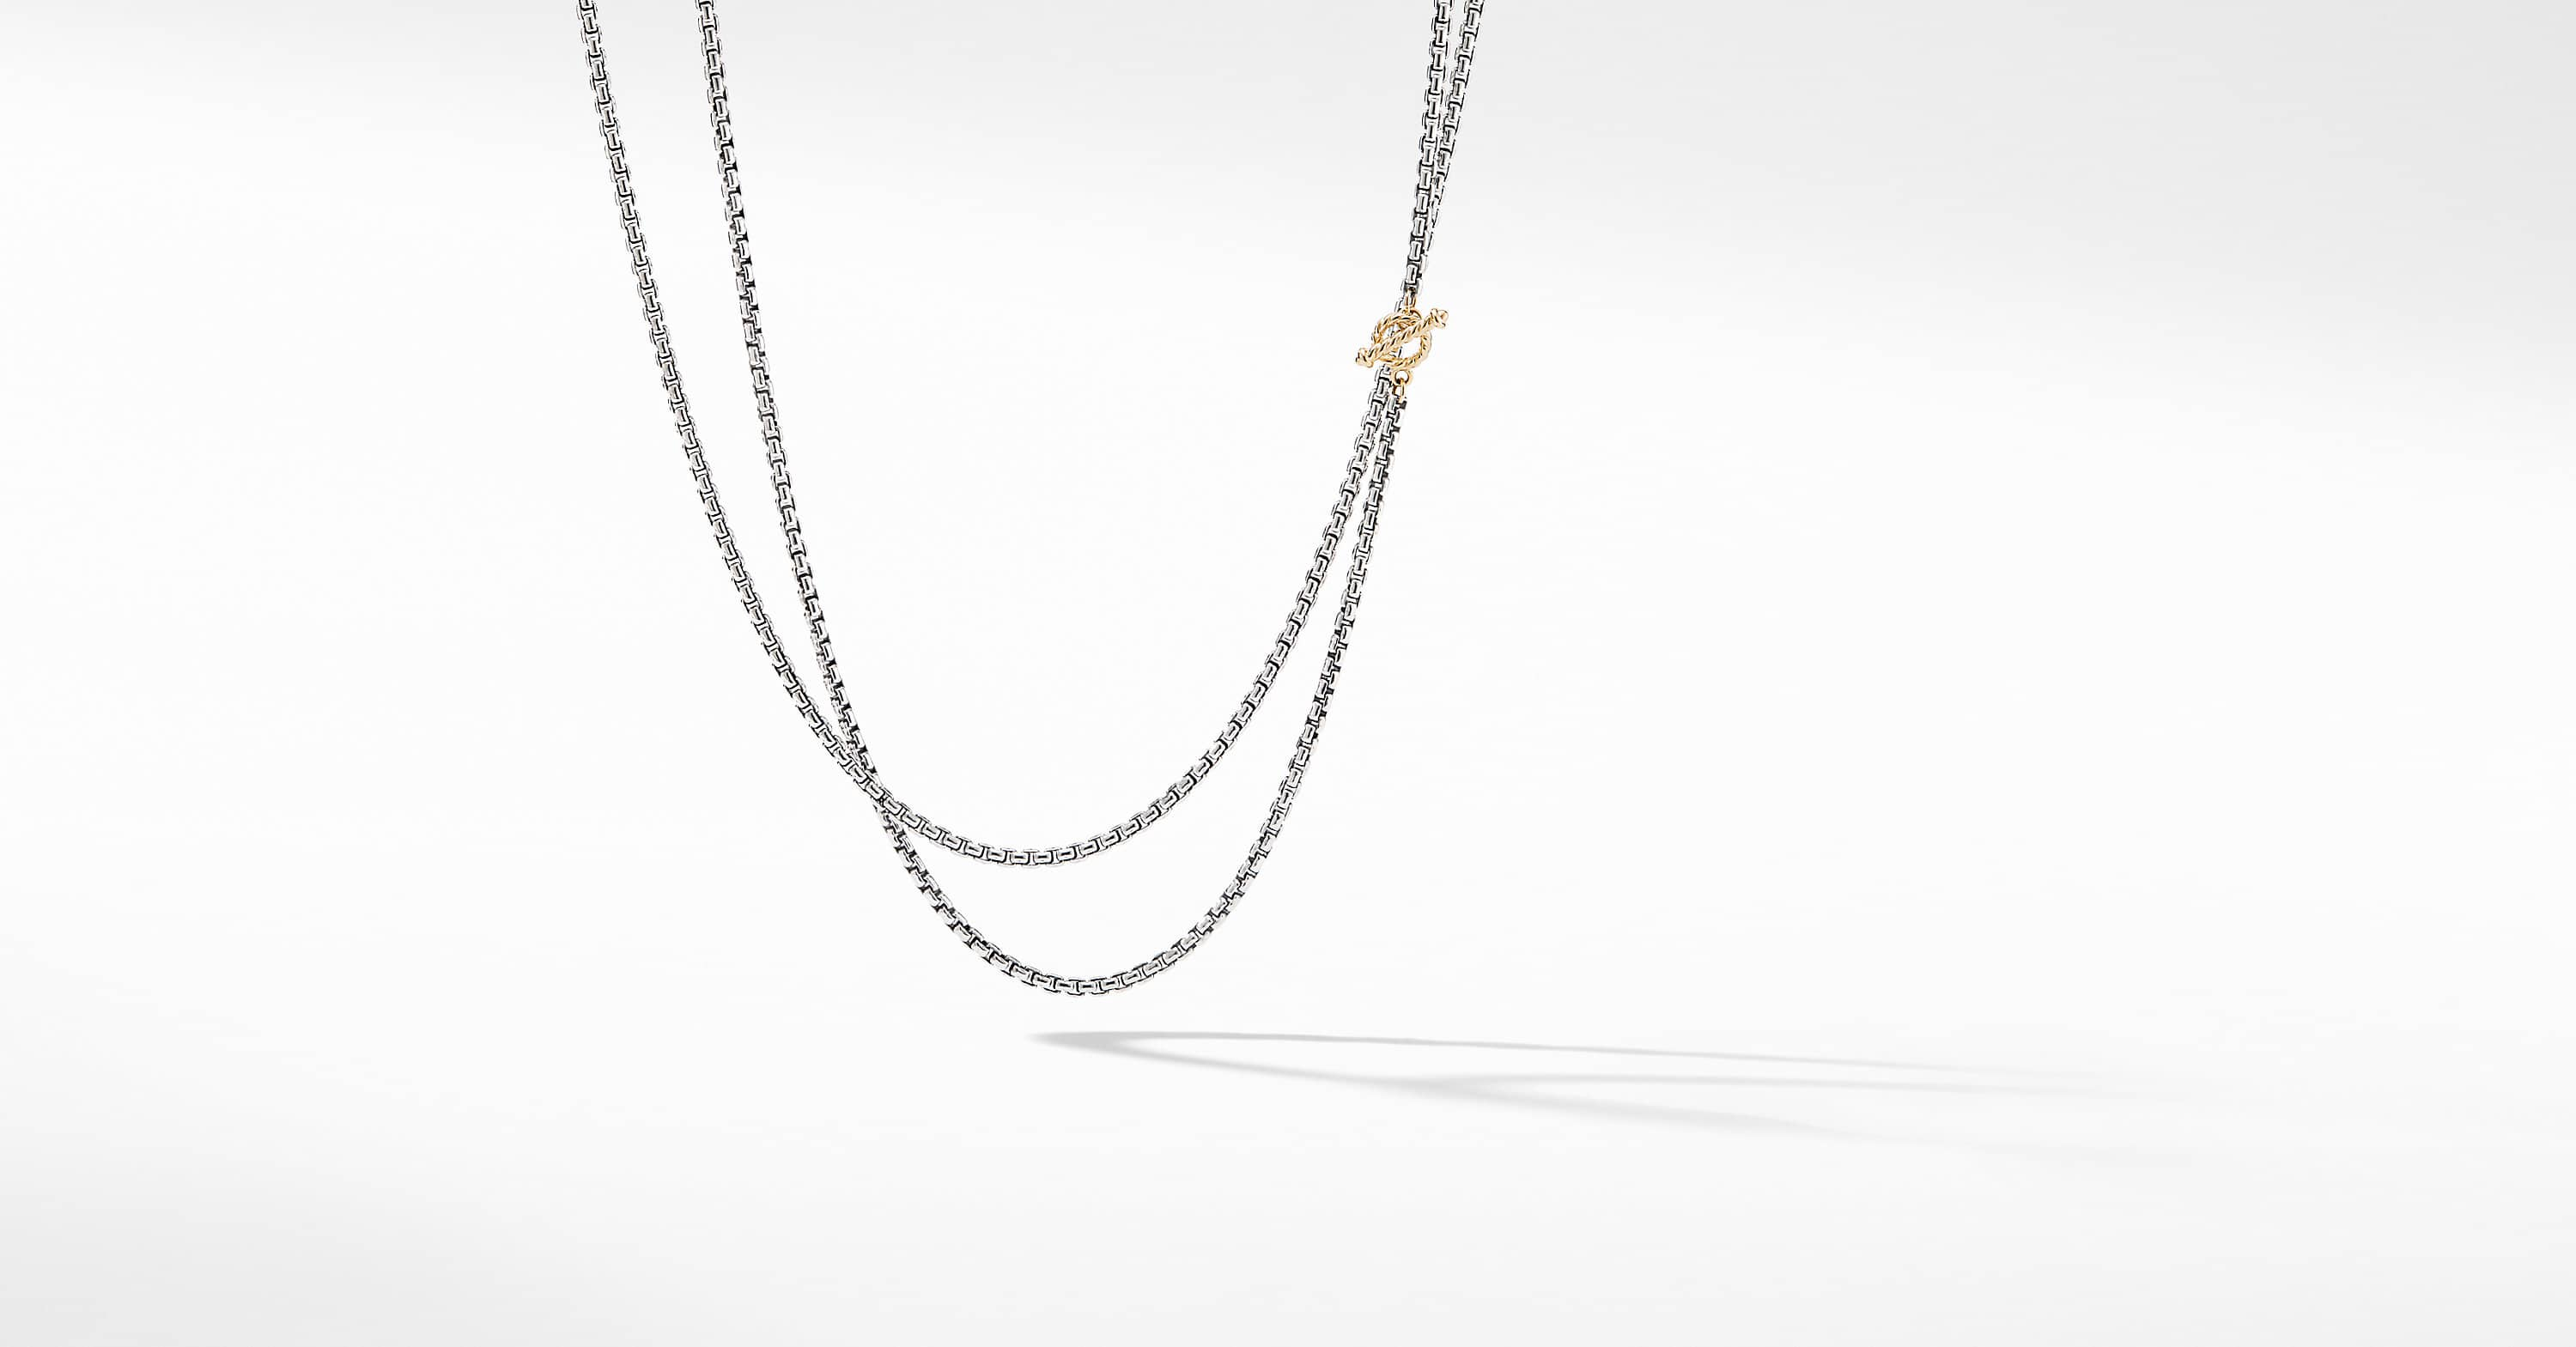 DY Bel Aire Chain Necklace with 14K Yellow Gold